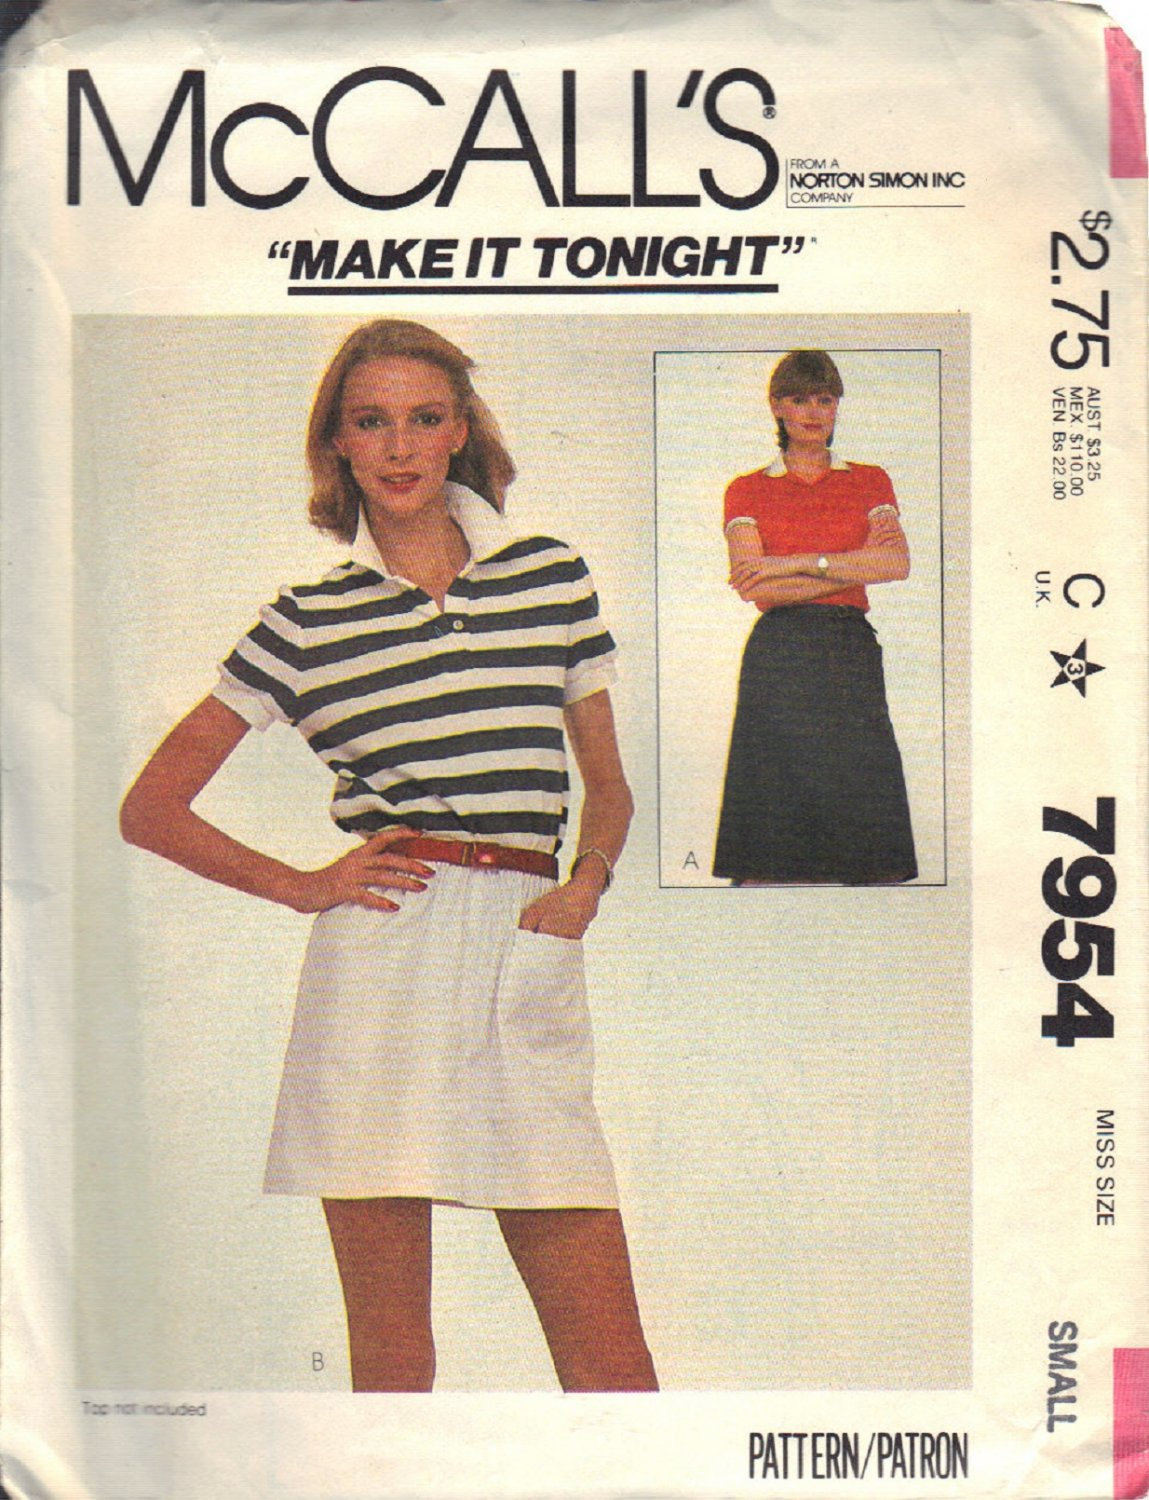 McCall's Pattern 7954 dated 1982 size Small 10/12 Misses� Skirt UNCUT